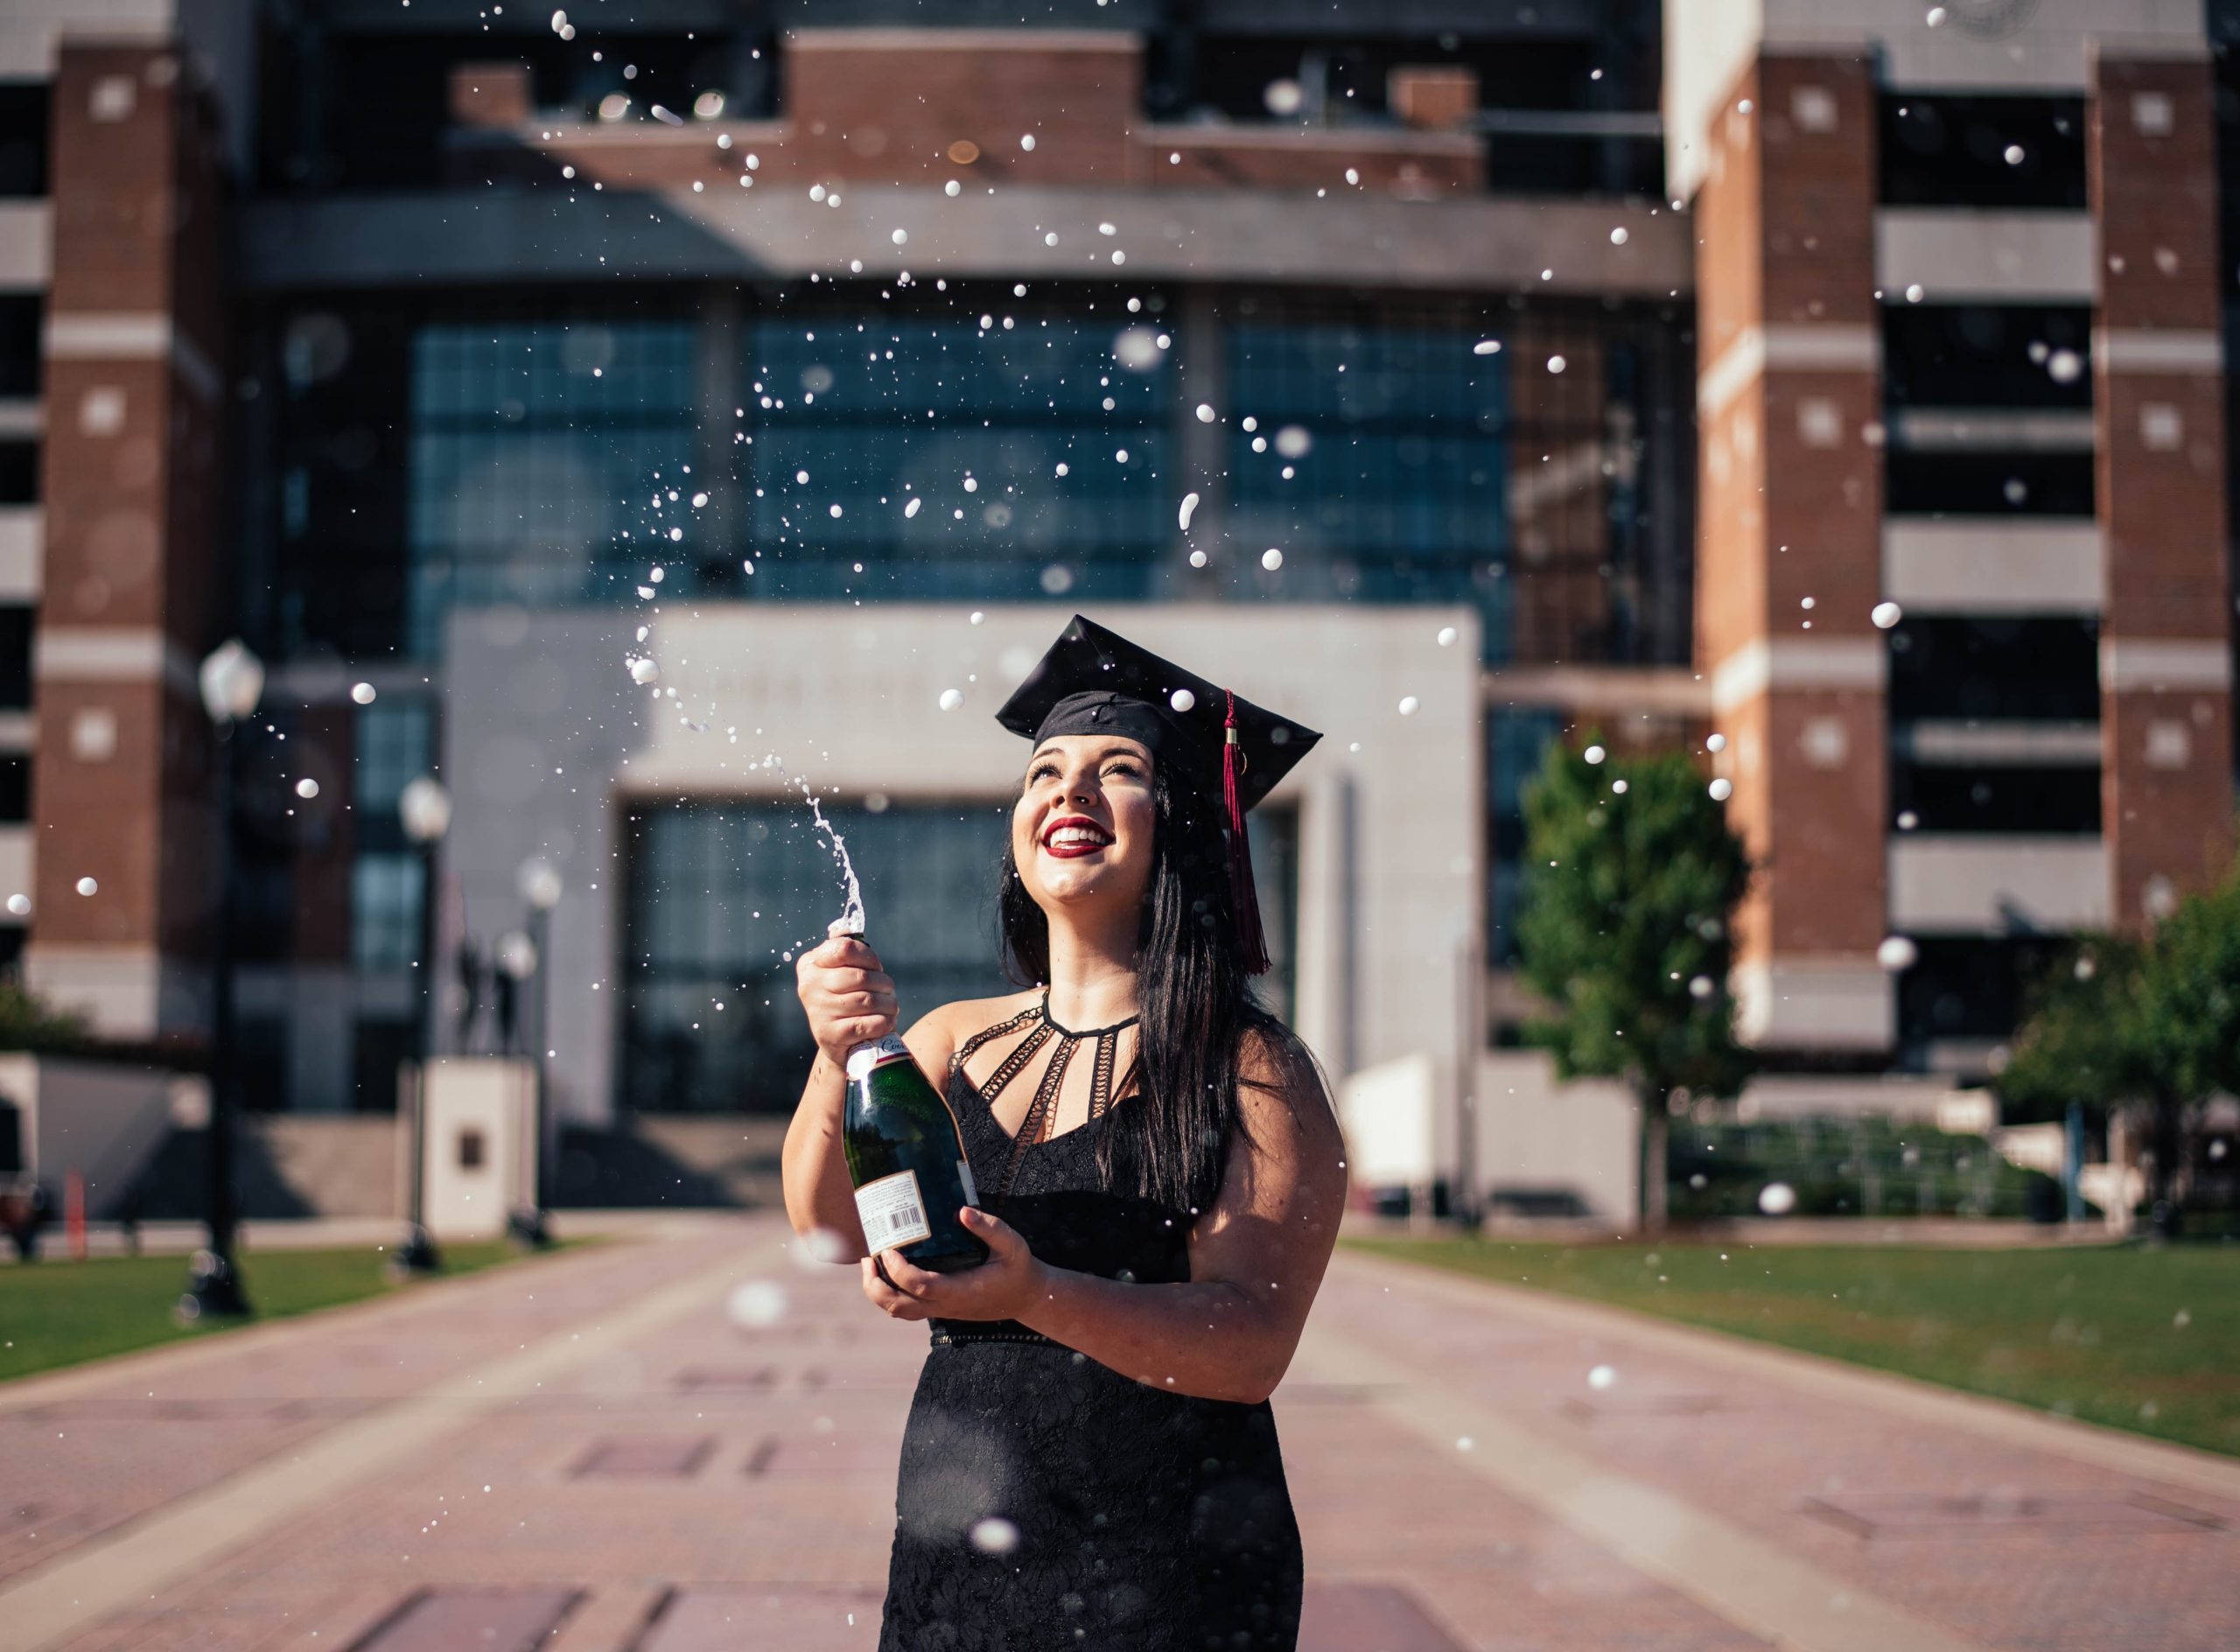 Student Popping Champagne at Graduation - University Language Degrees